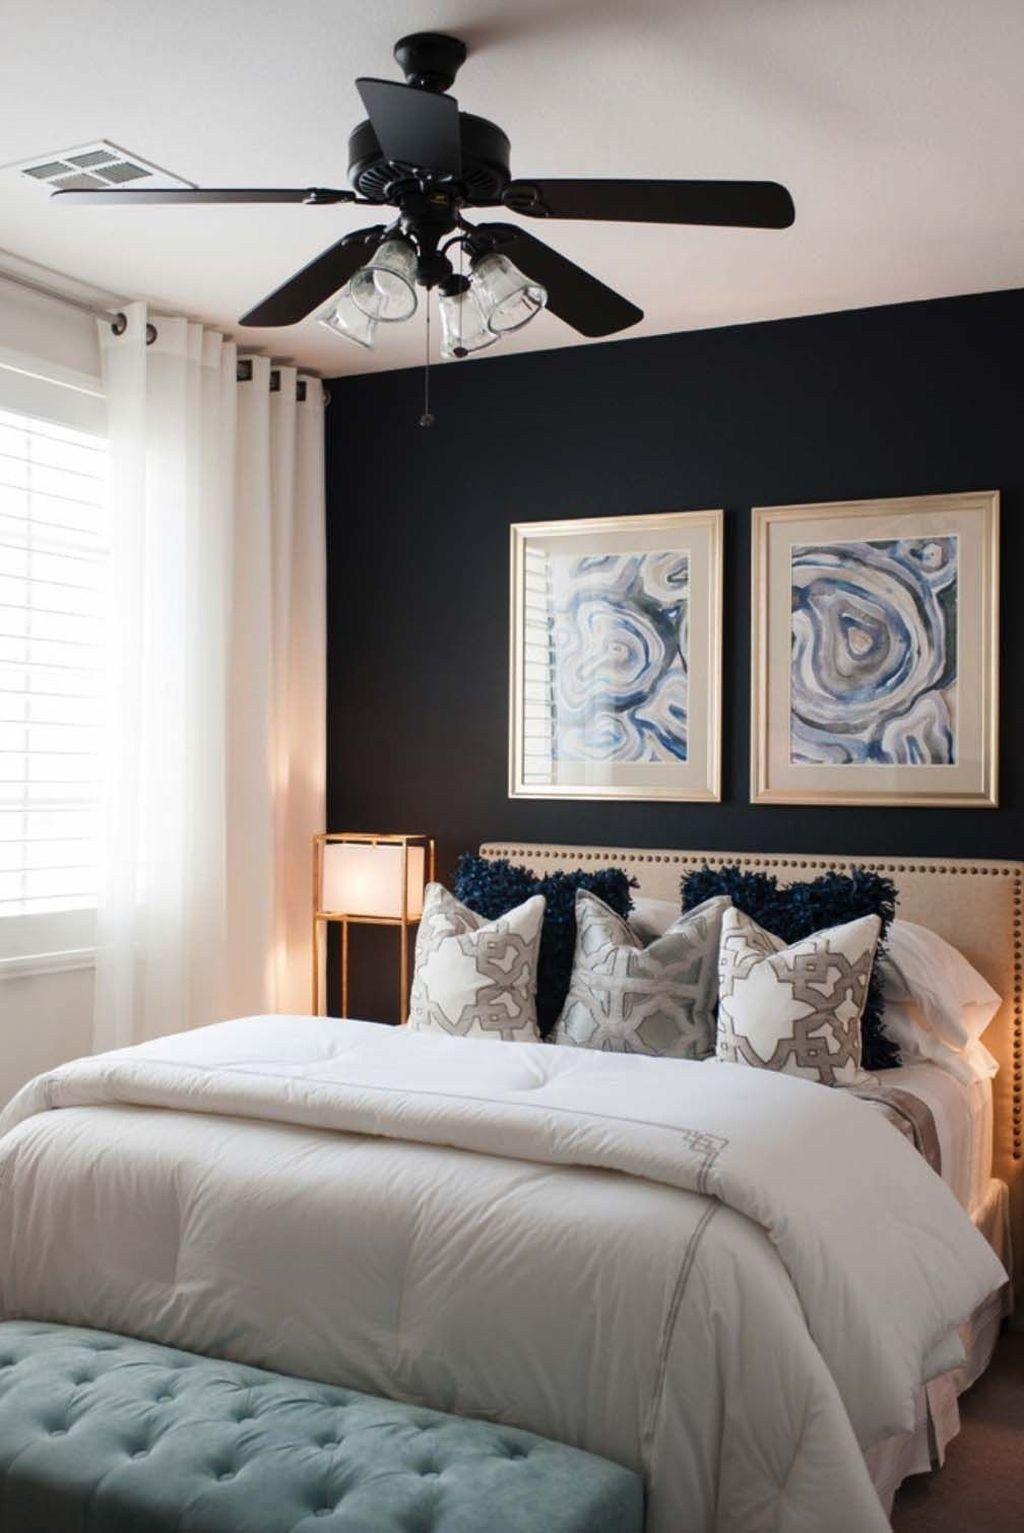 43 Modern Small Master Bedroom On A Budget Cozy Master Bedroom Remodel Bedroom Small Master Bedroom Inspiration small master bedroom